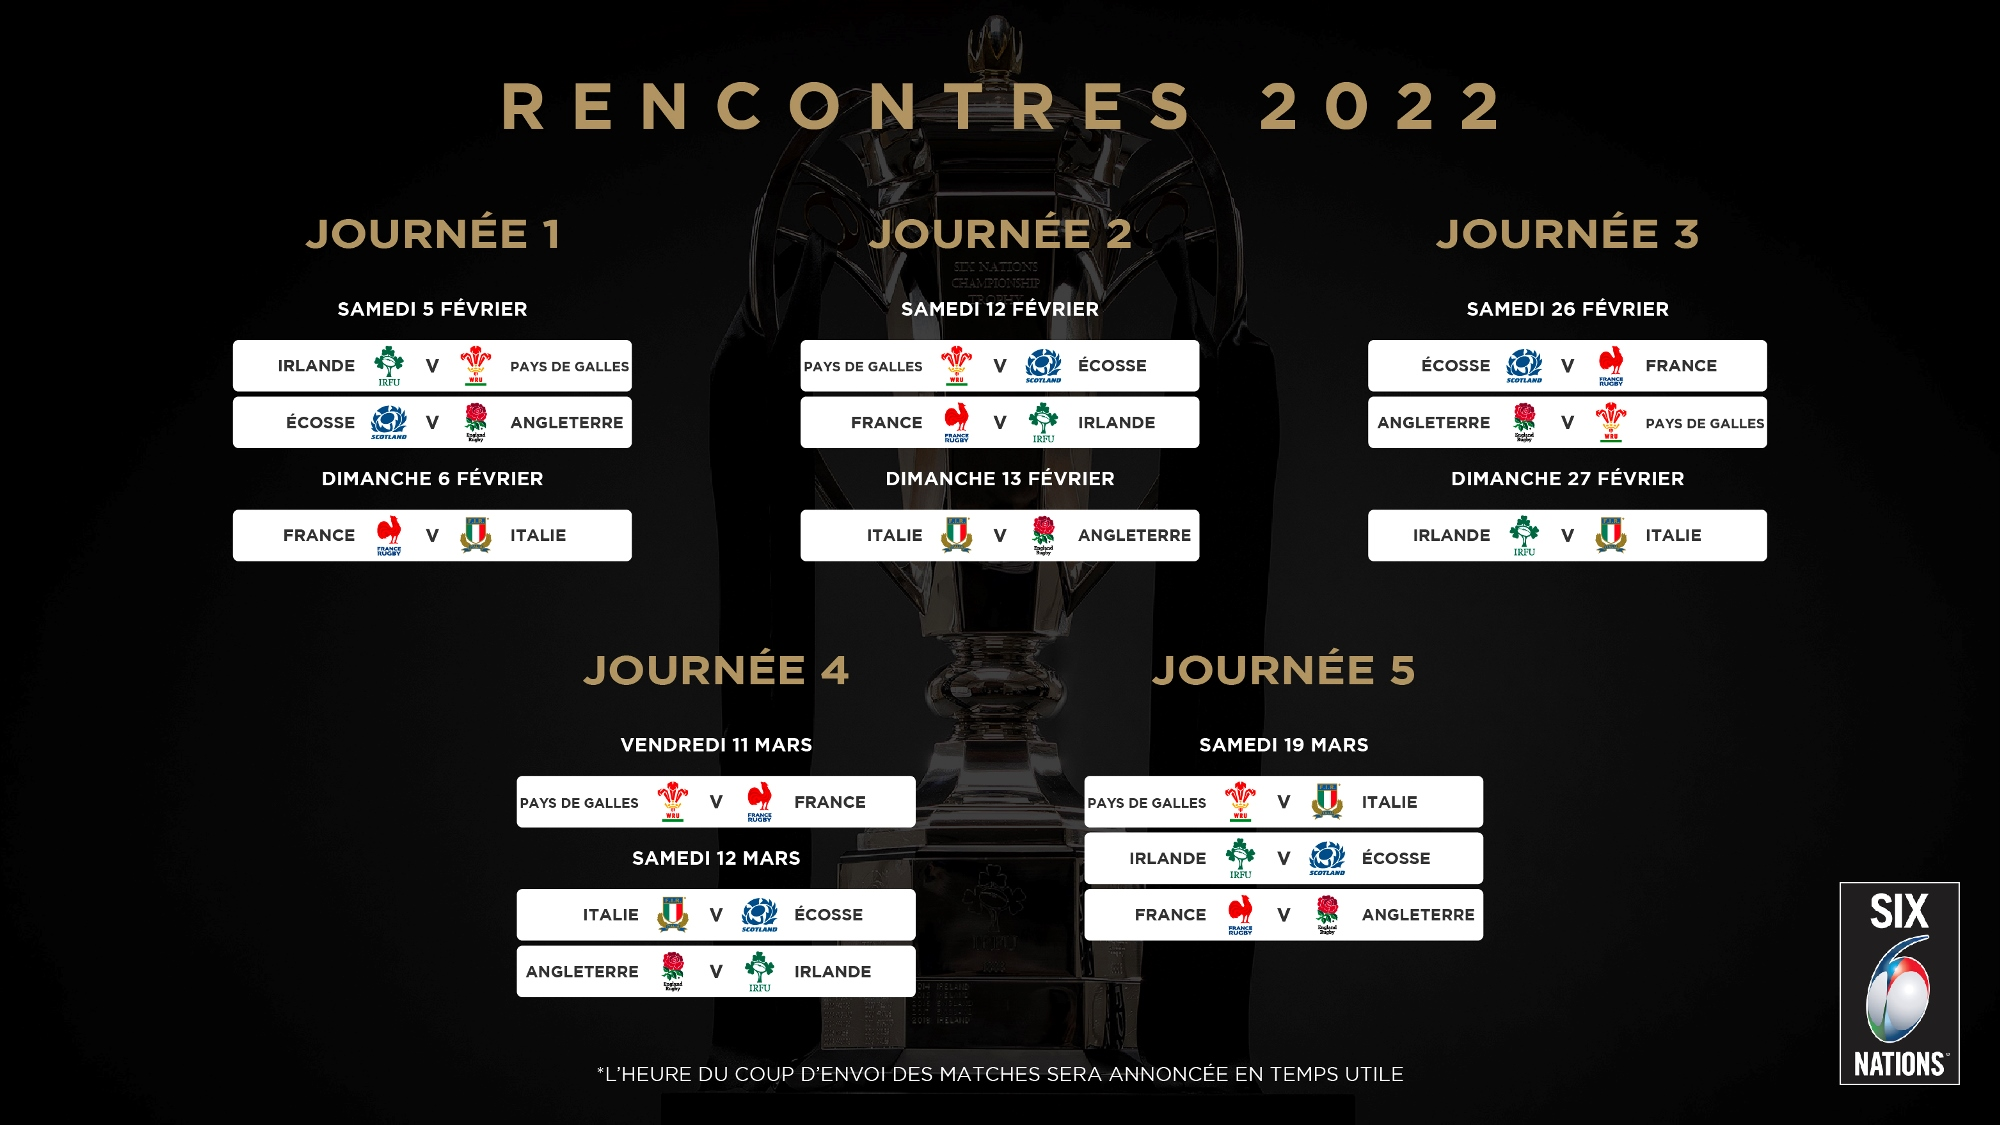 Calendrier Rugby 2022 Six Nations Rugby | Le calendrier du Tournoi des Six Nations 2022